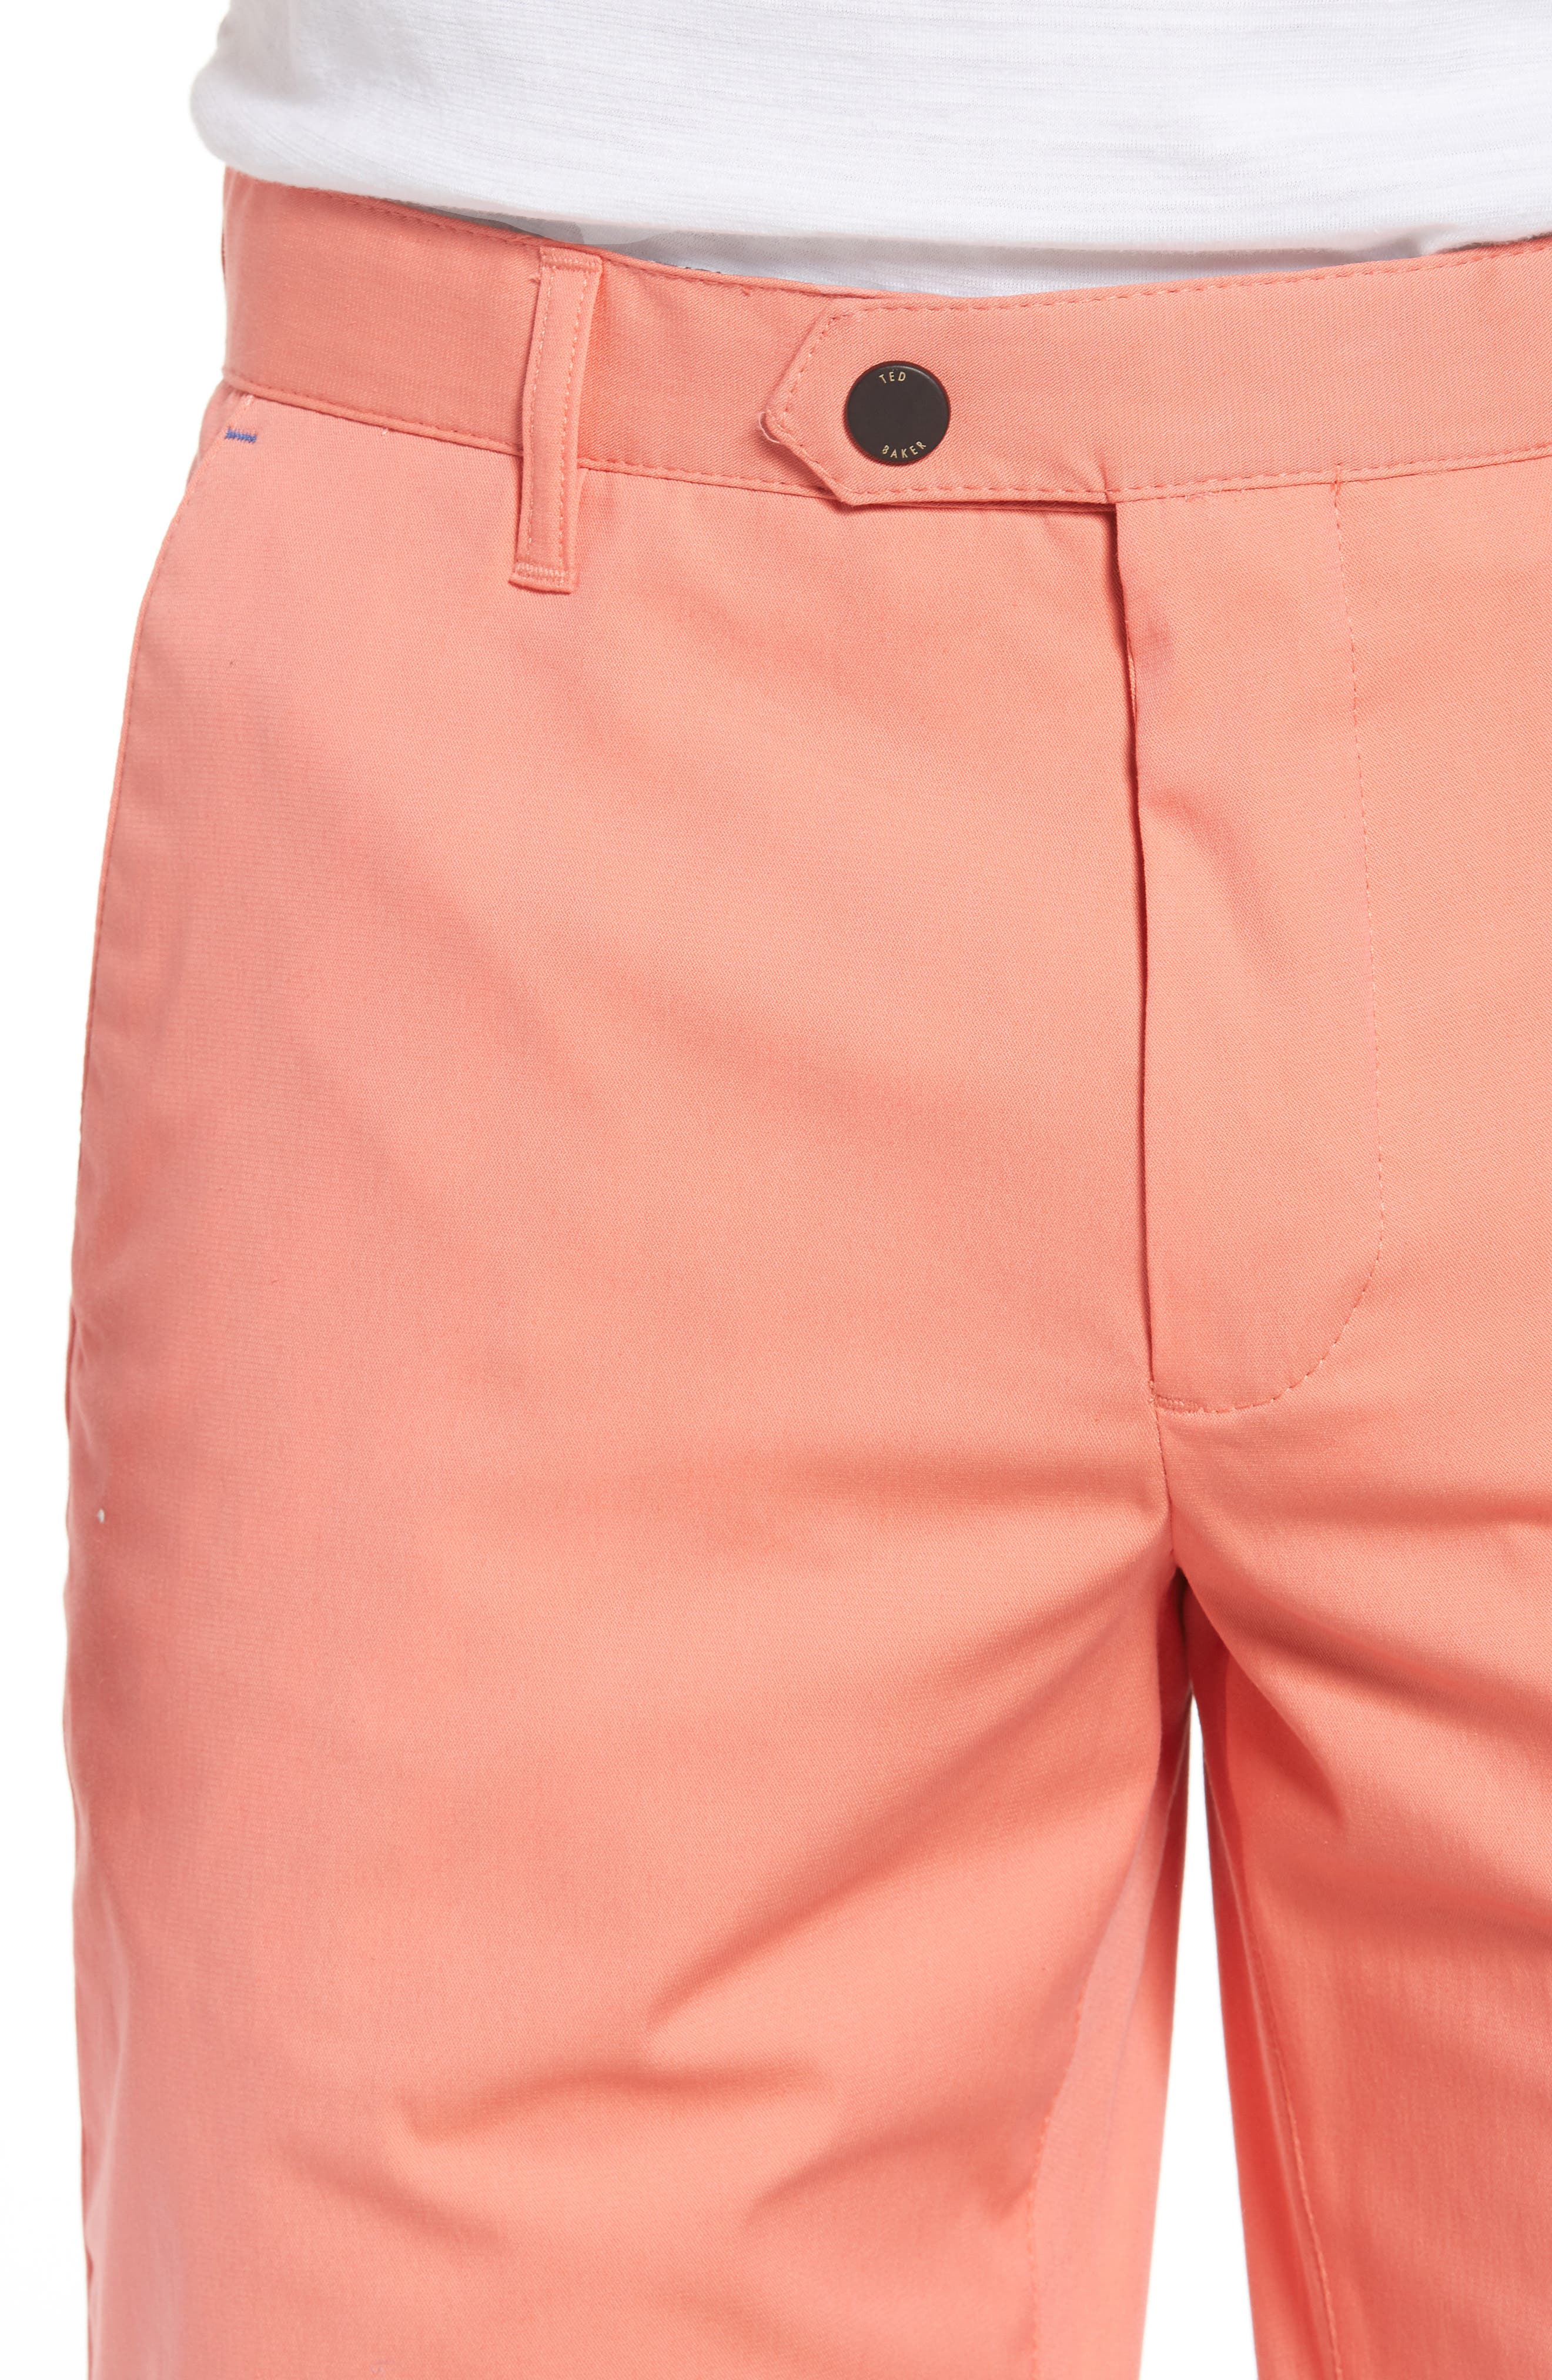 Twopar Flat Front Shorts,                             Alternate thumbnail 4, color,                             Coral